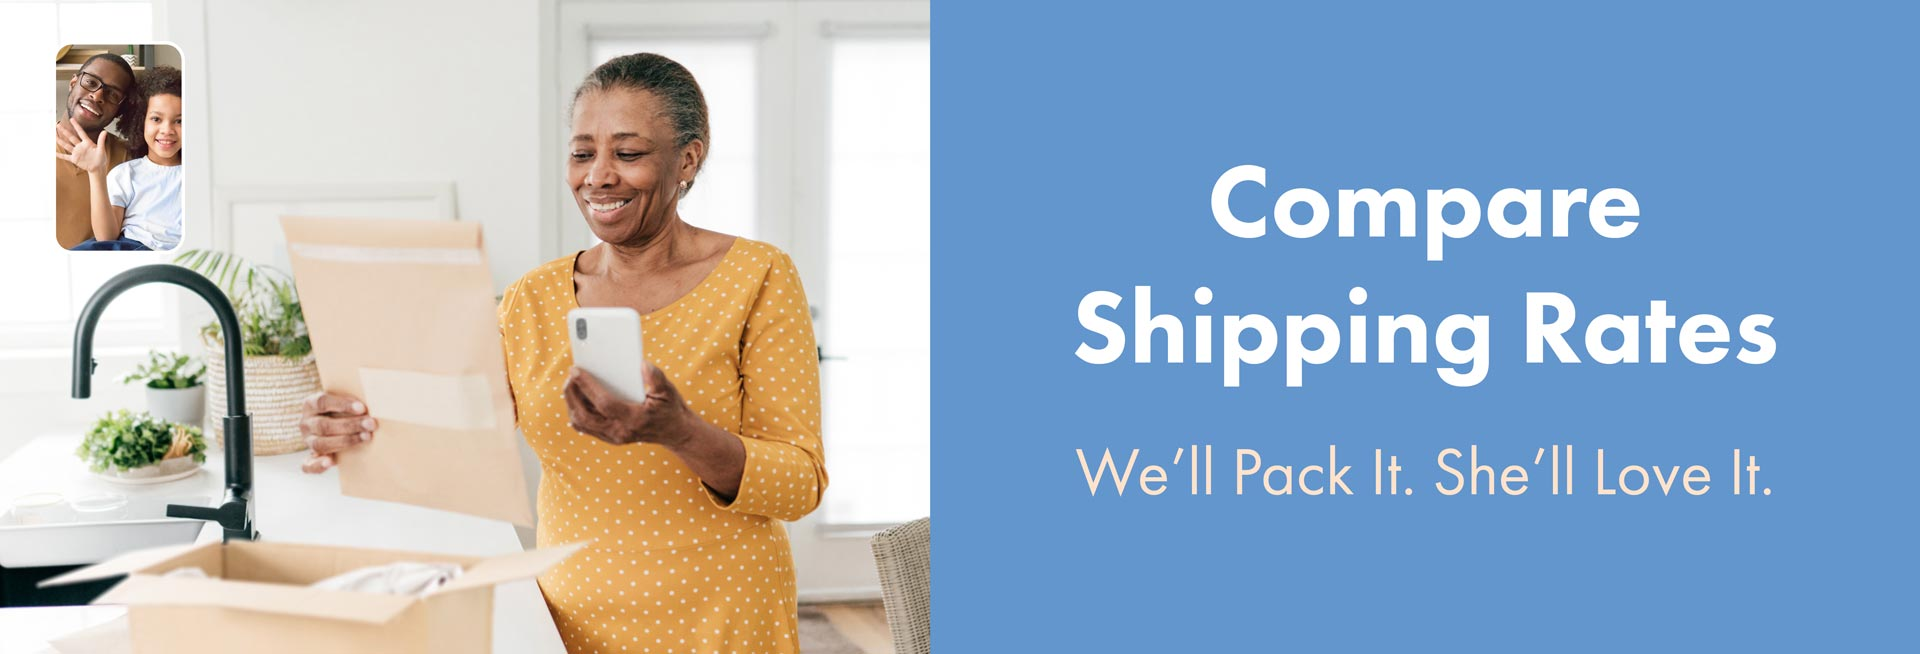 Compare Shipping Rates. We